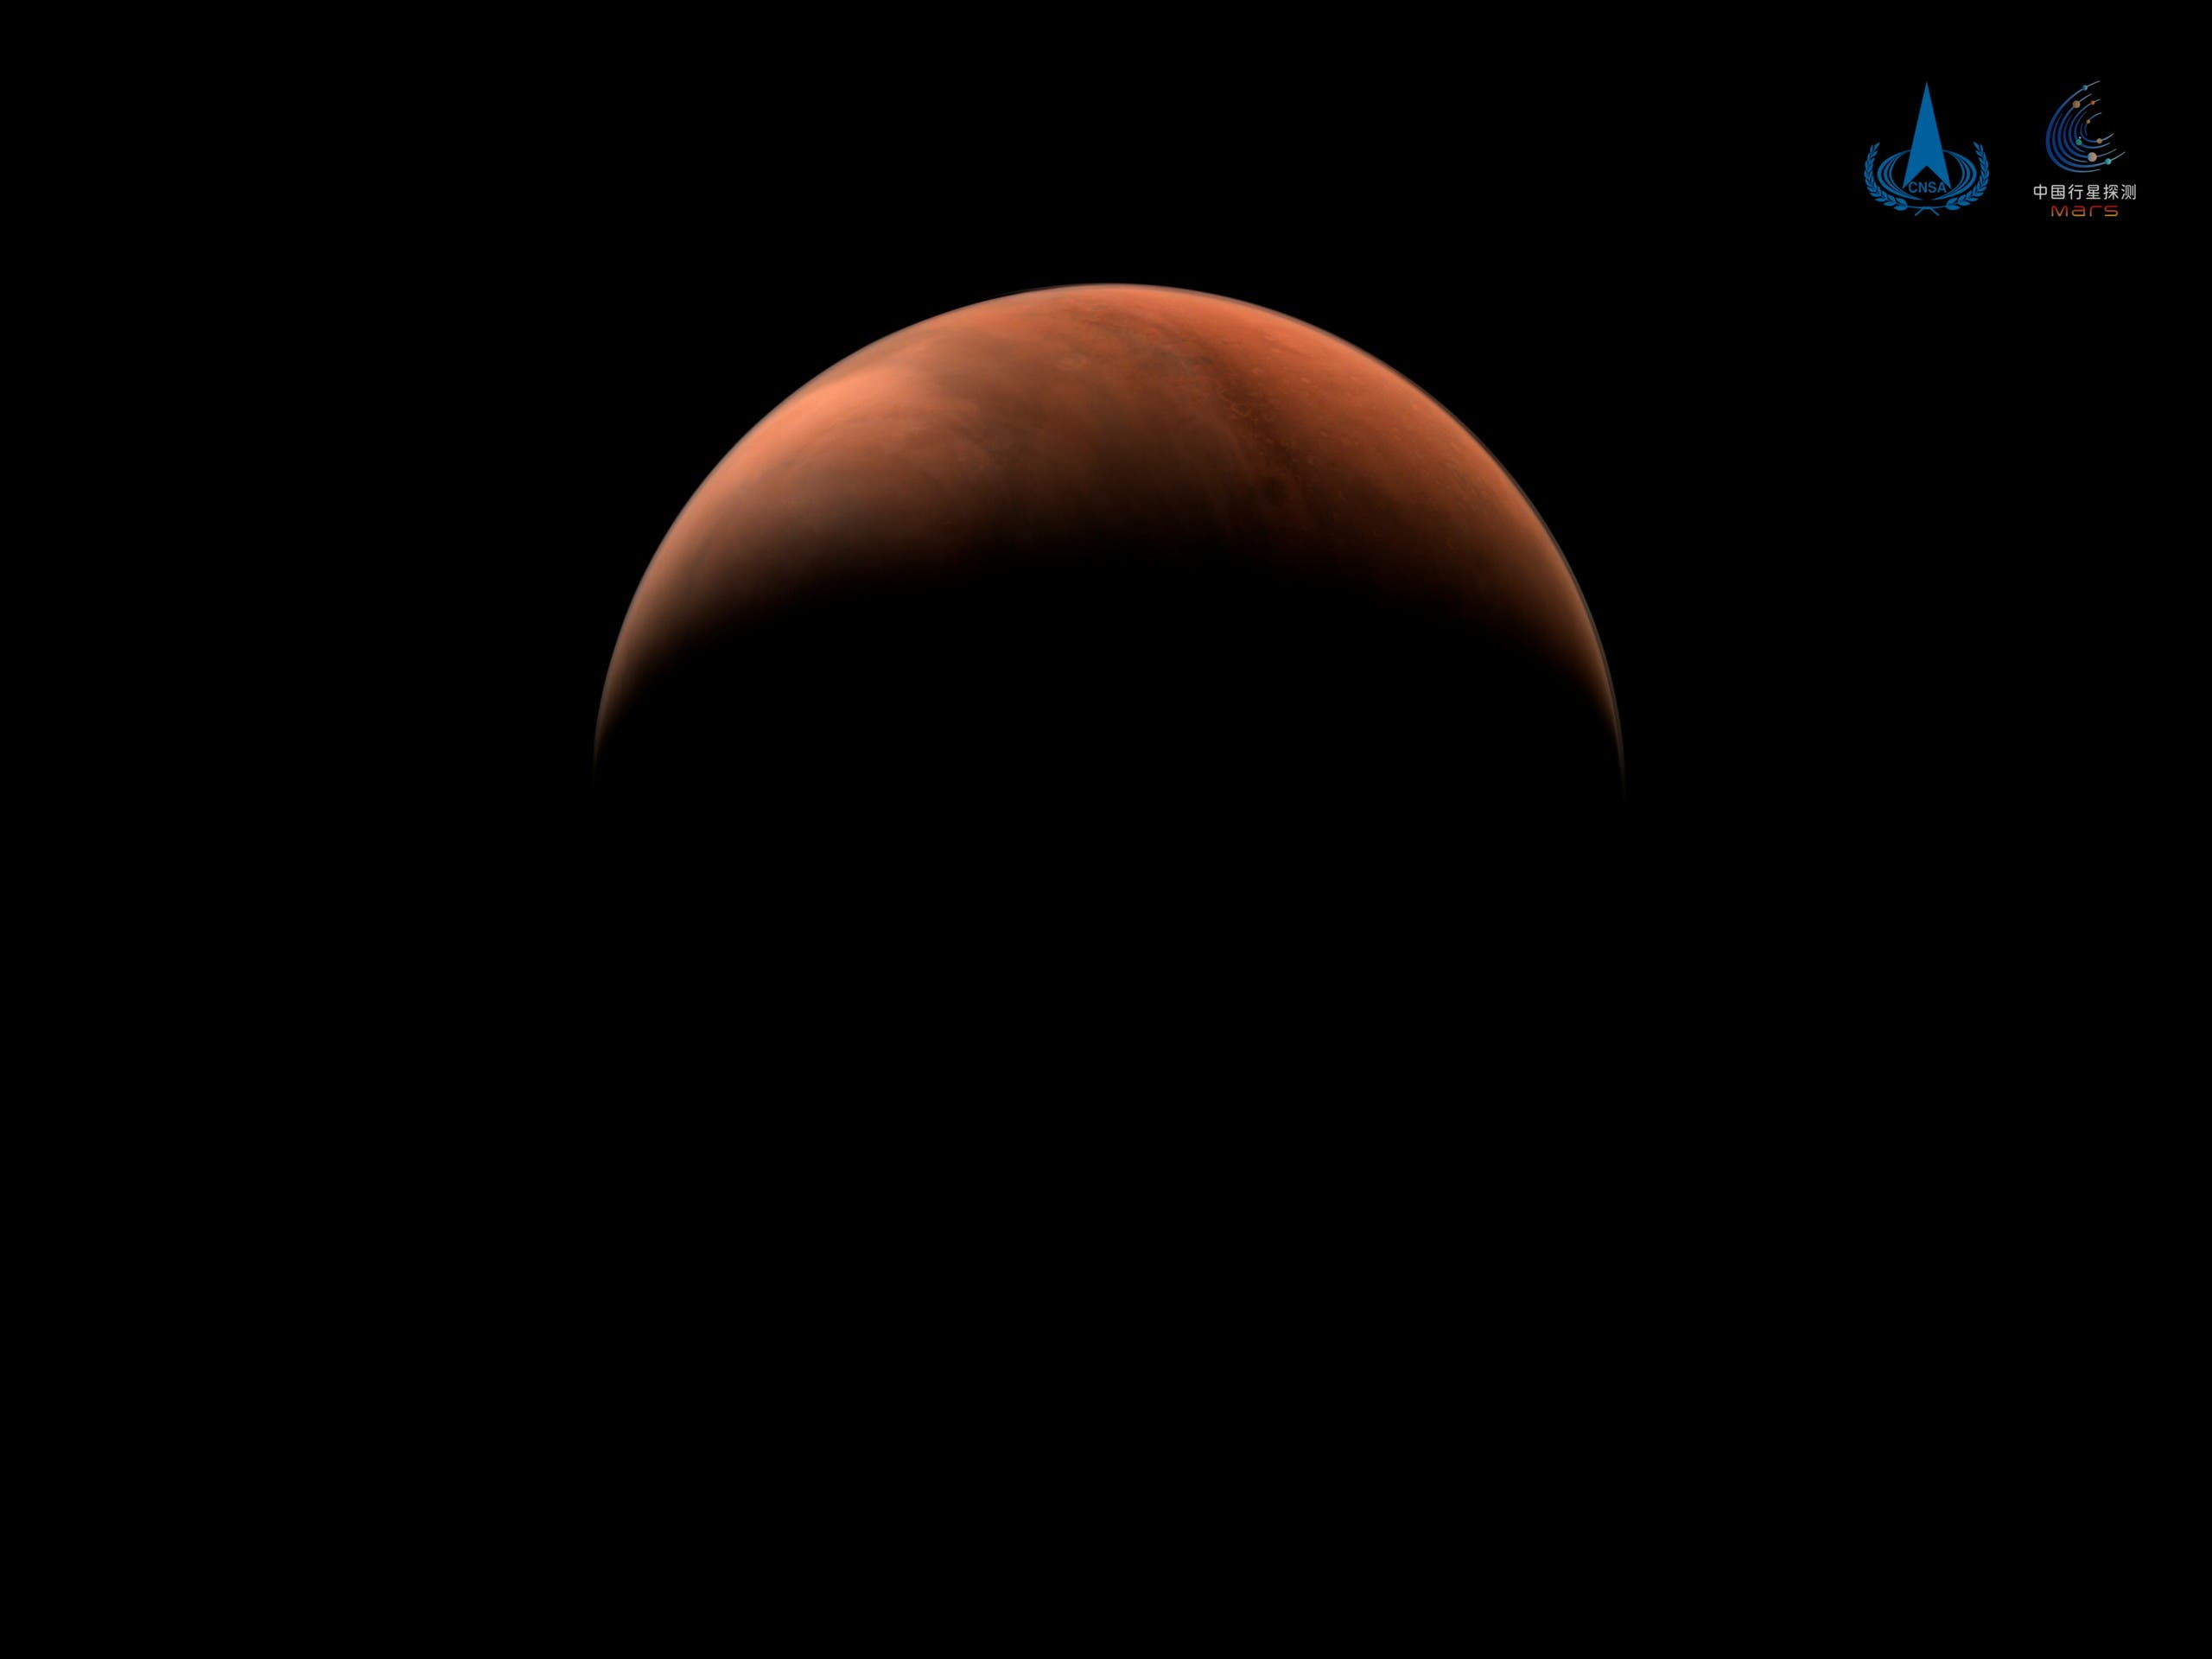 An image of Mars taken by China's Tianwen-1 unmanned probe is seen in this handout image released by China National Space Administration (CNSA) March 26, 2021. (CNSA/Handout via Reuters)